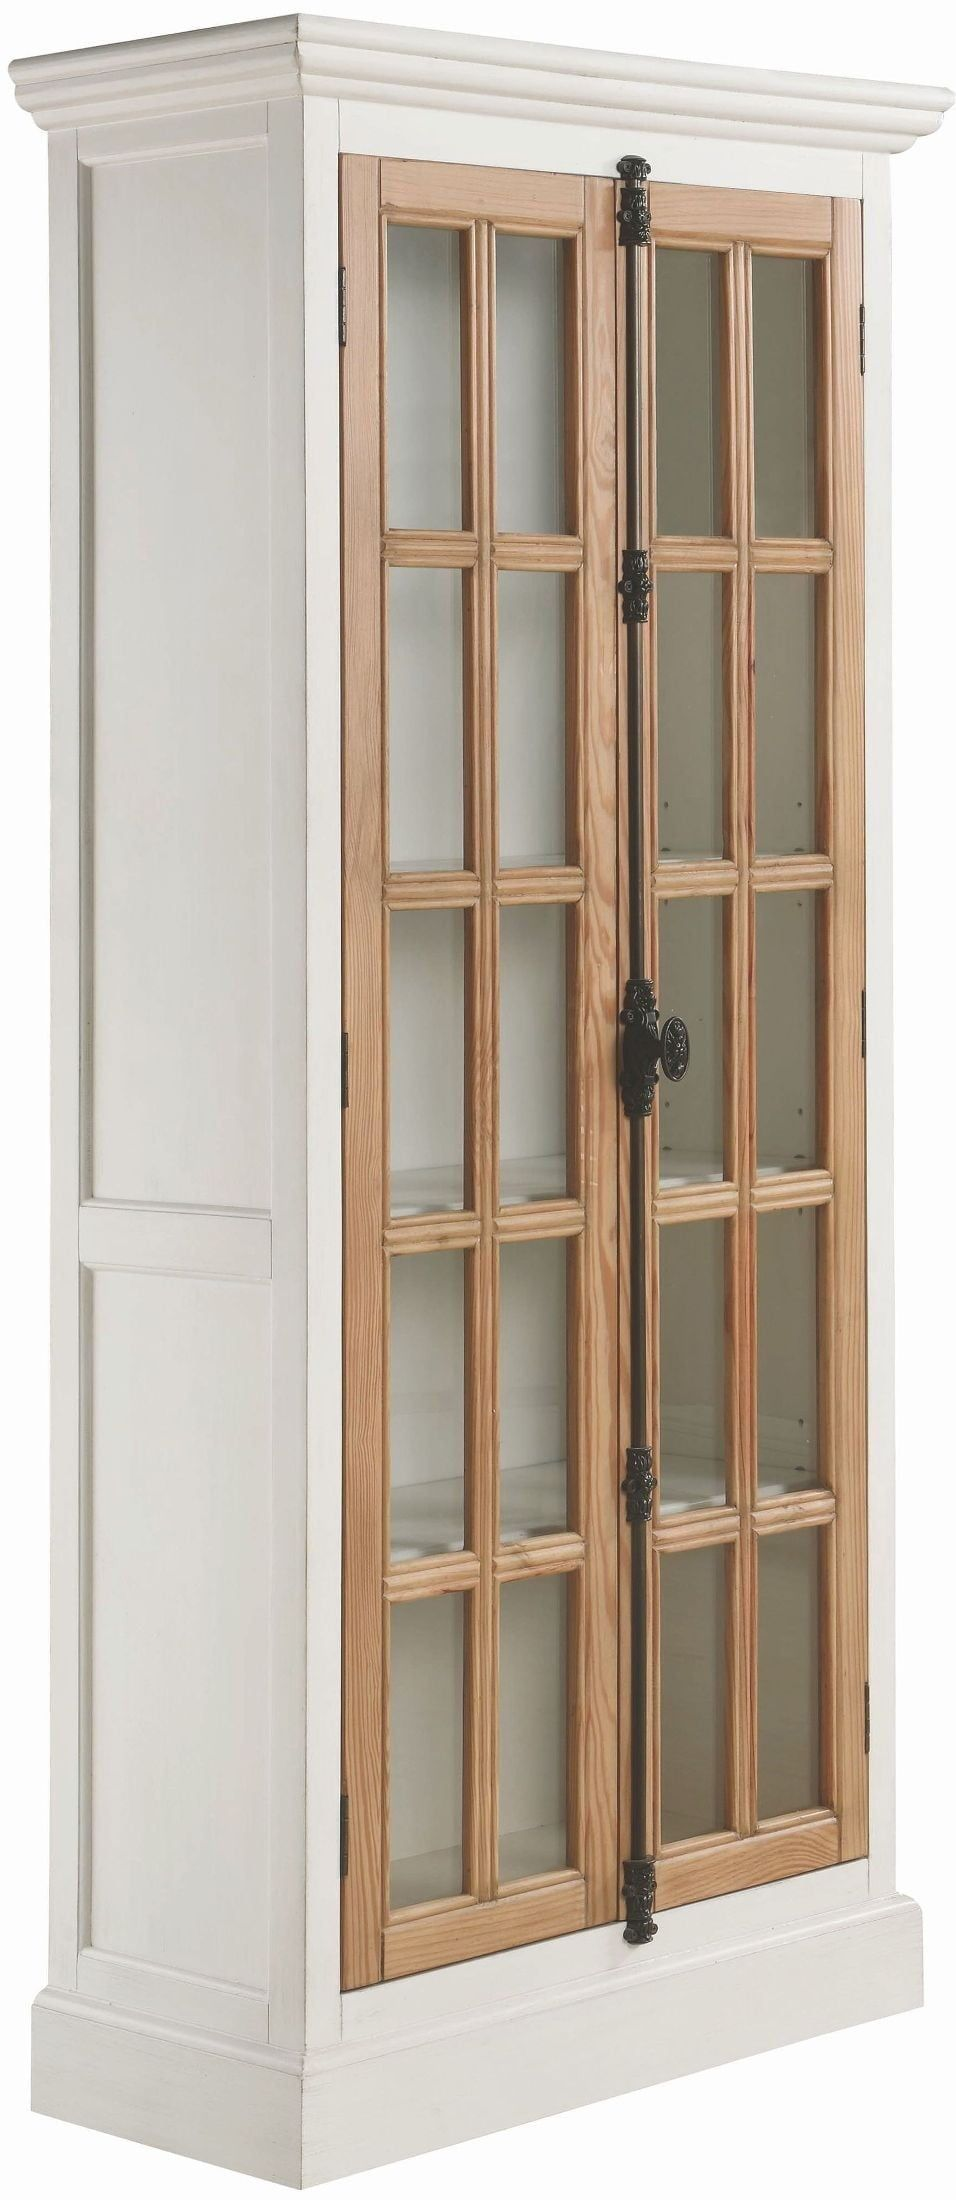 950965 Antique White Curio Tall Cabinet Tall Cabinet White Curio Cabinet Antique French Doors